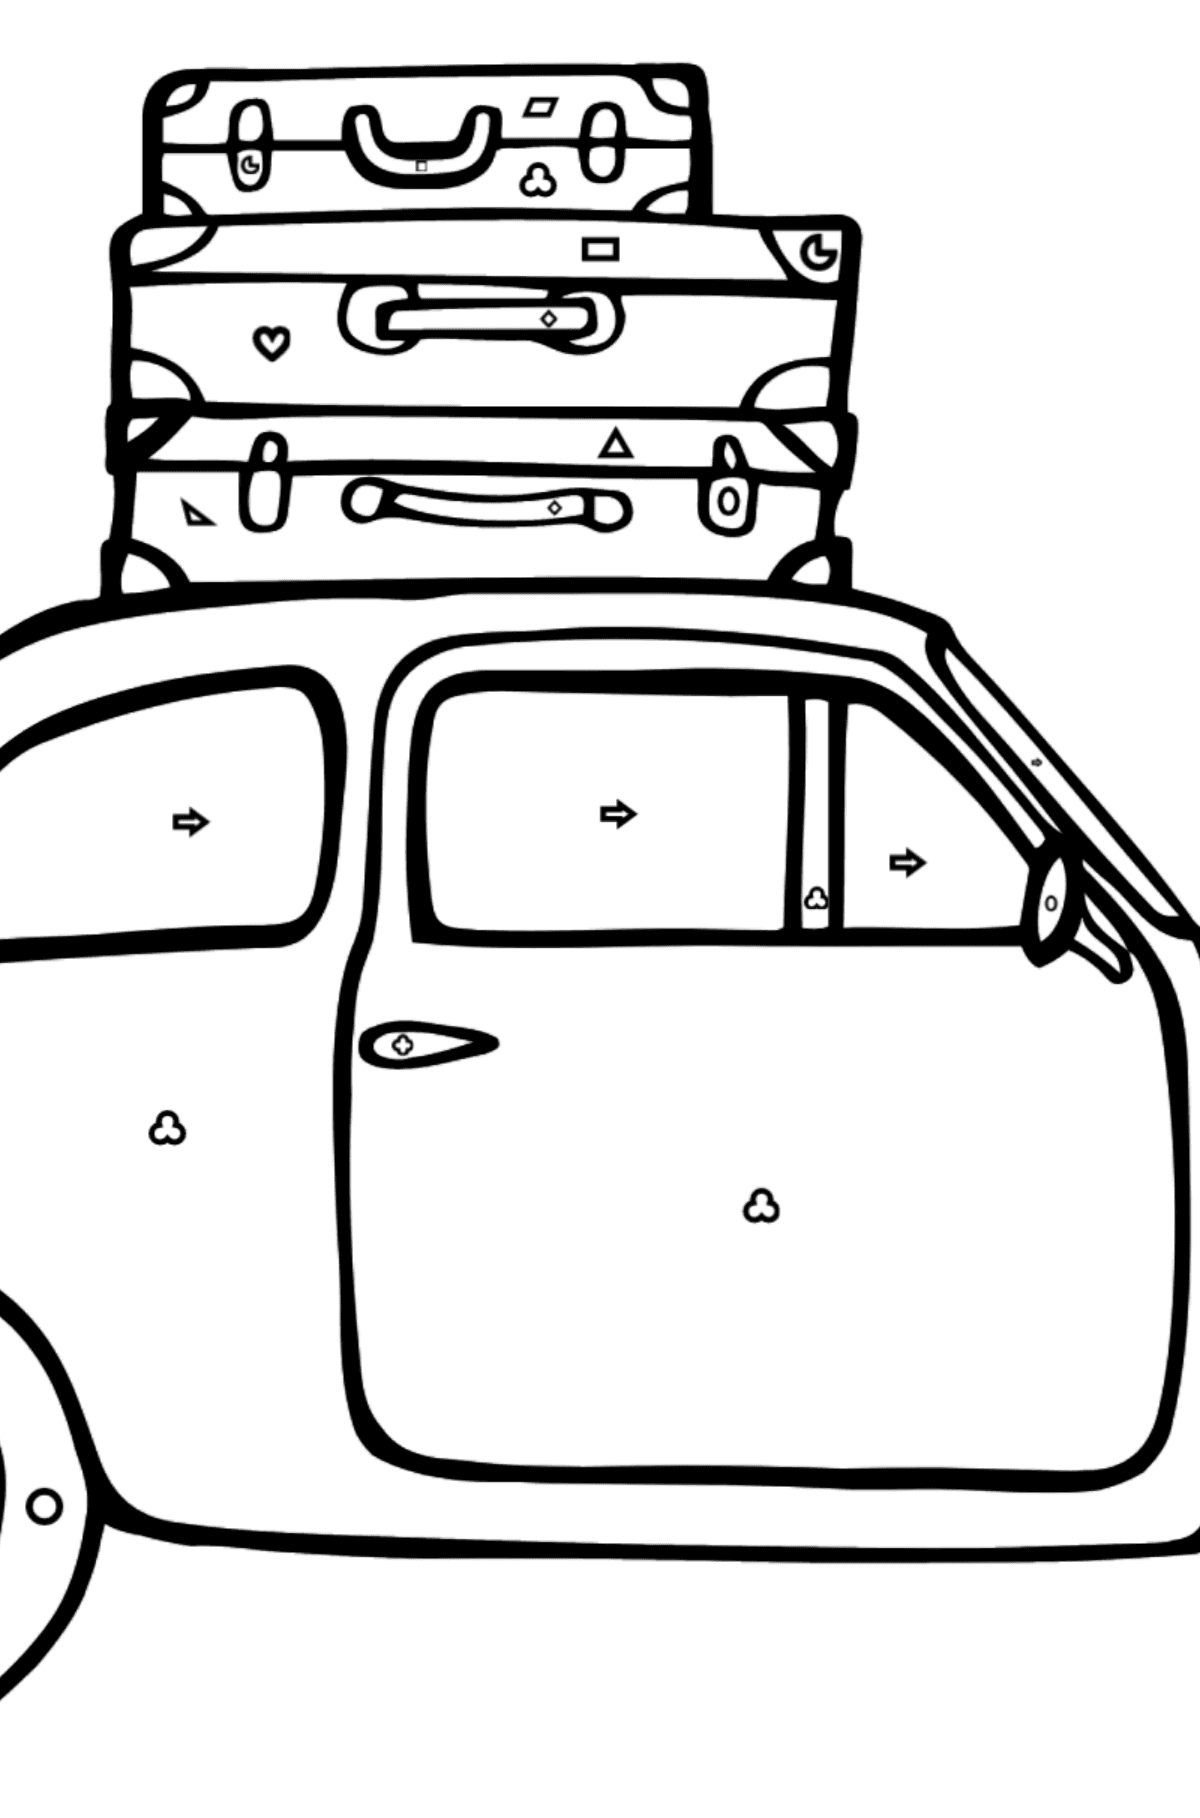 Fiat 600 car coloring page - Coloring by Geometric Shapes for Kids